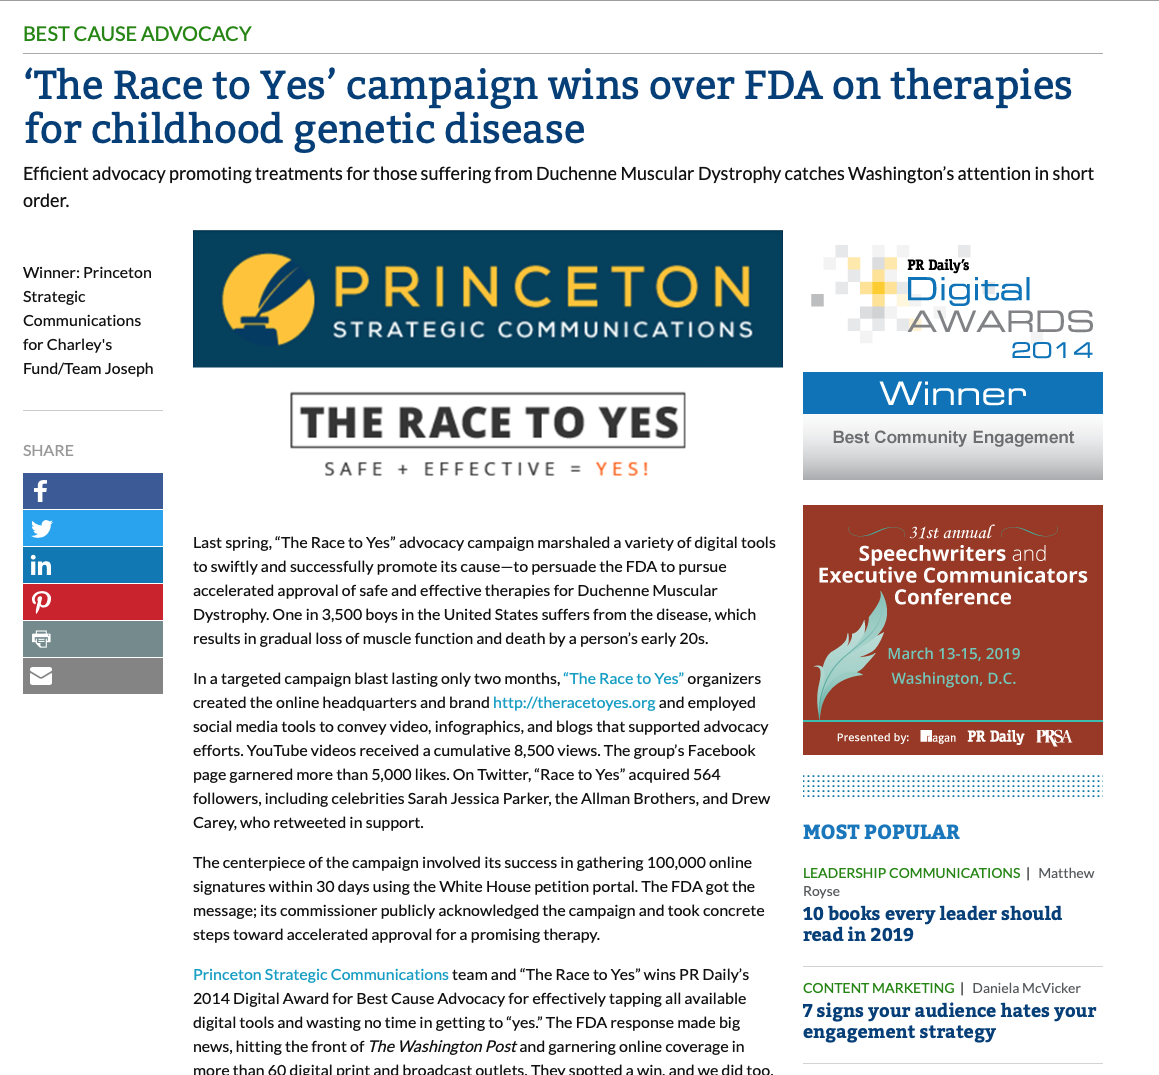 a340e14af5a1 ... in Ragan's PR Daily's 2014 Digital Awards, the real gratification comes  as those facing Duchenne gain access to safe and effective therapies.